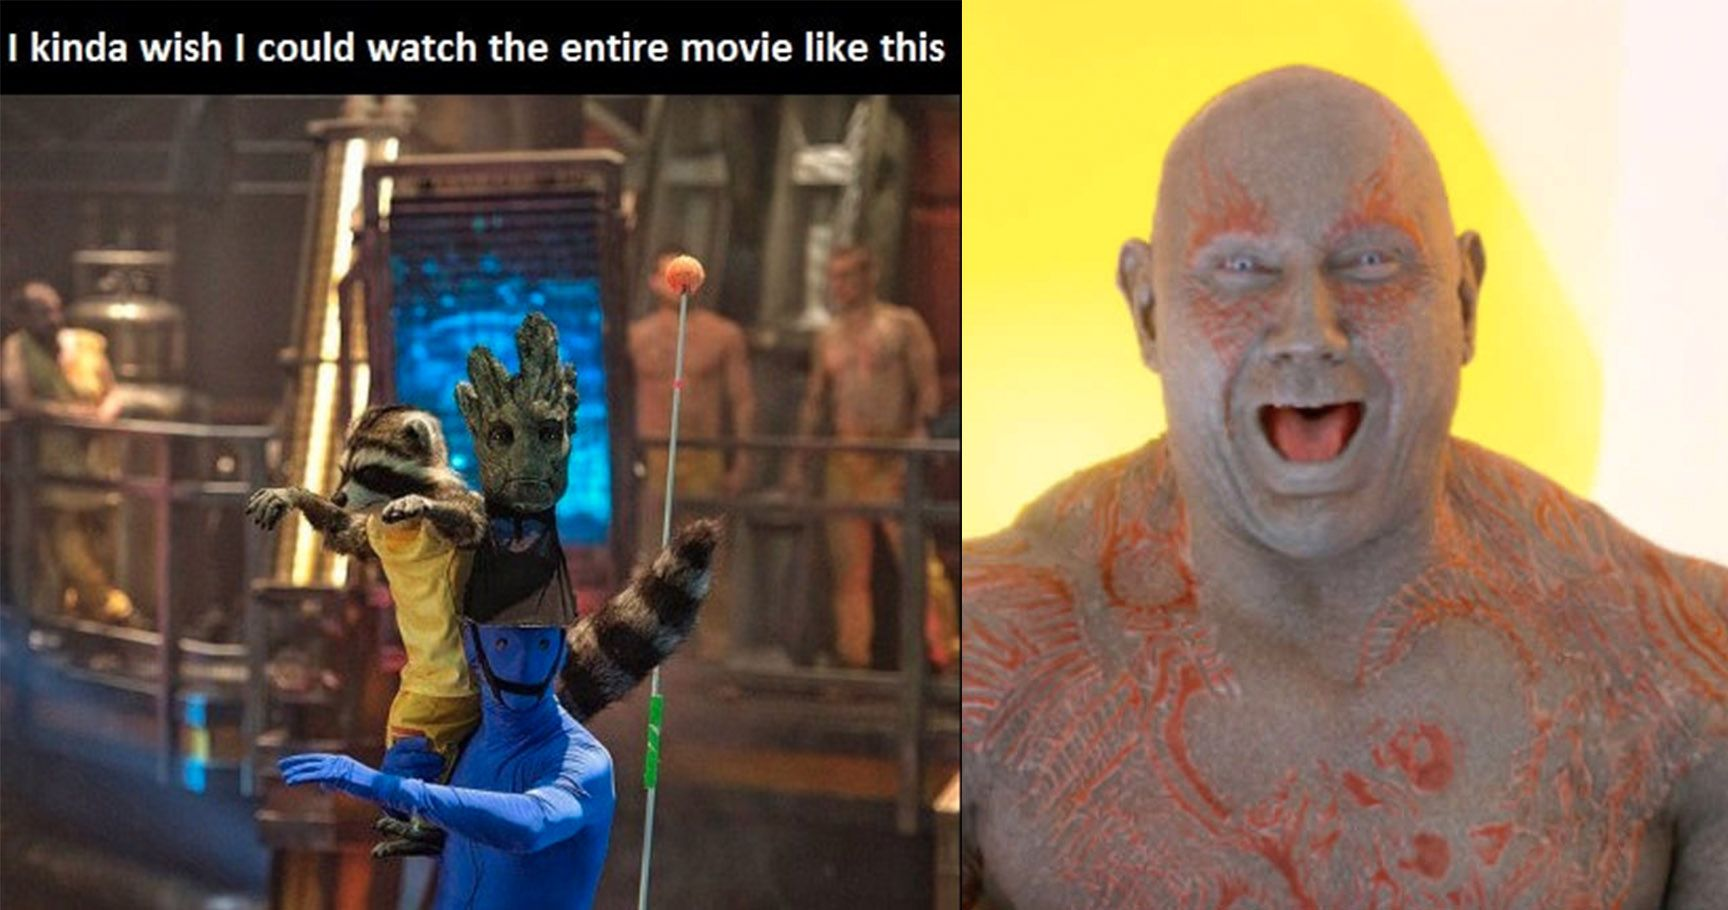 15 'Guardians Of The Galaxy' Memes We Can't Stop Laughing At